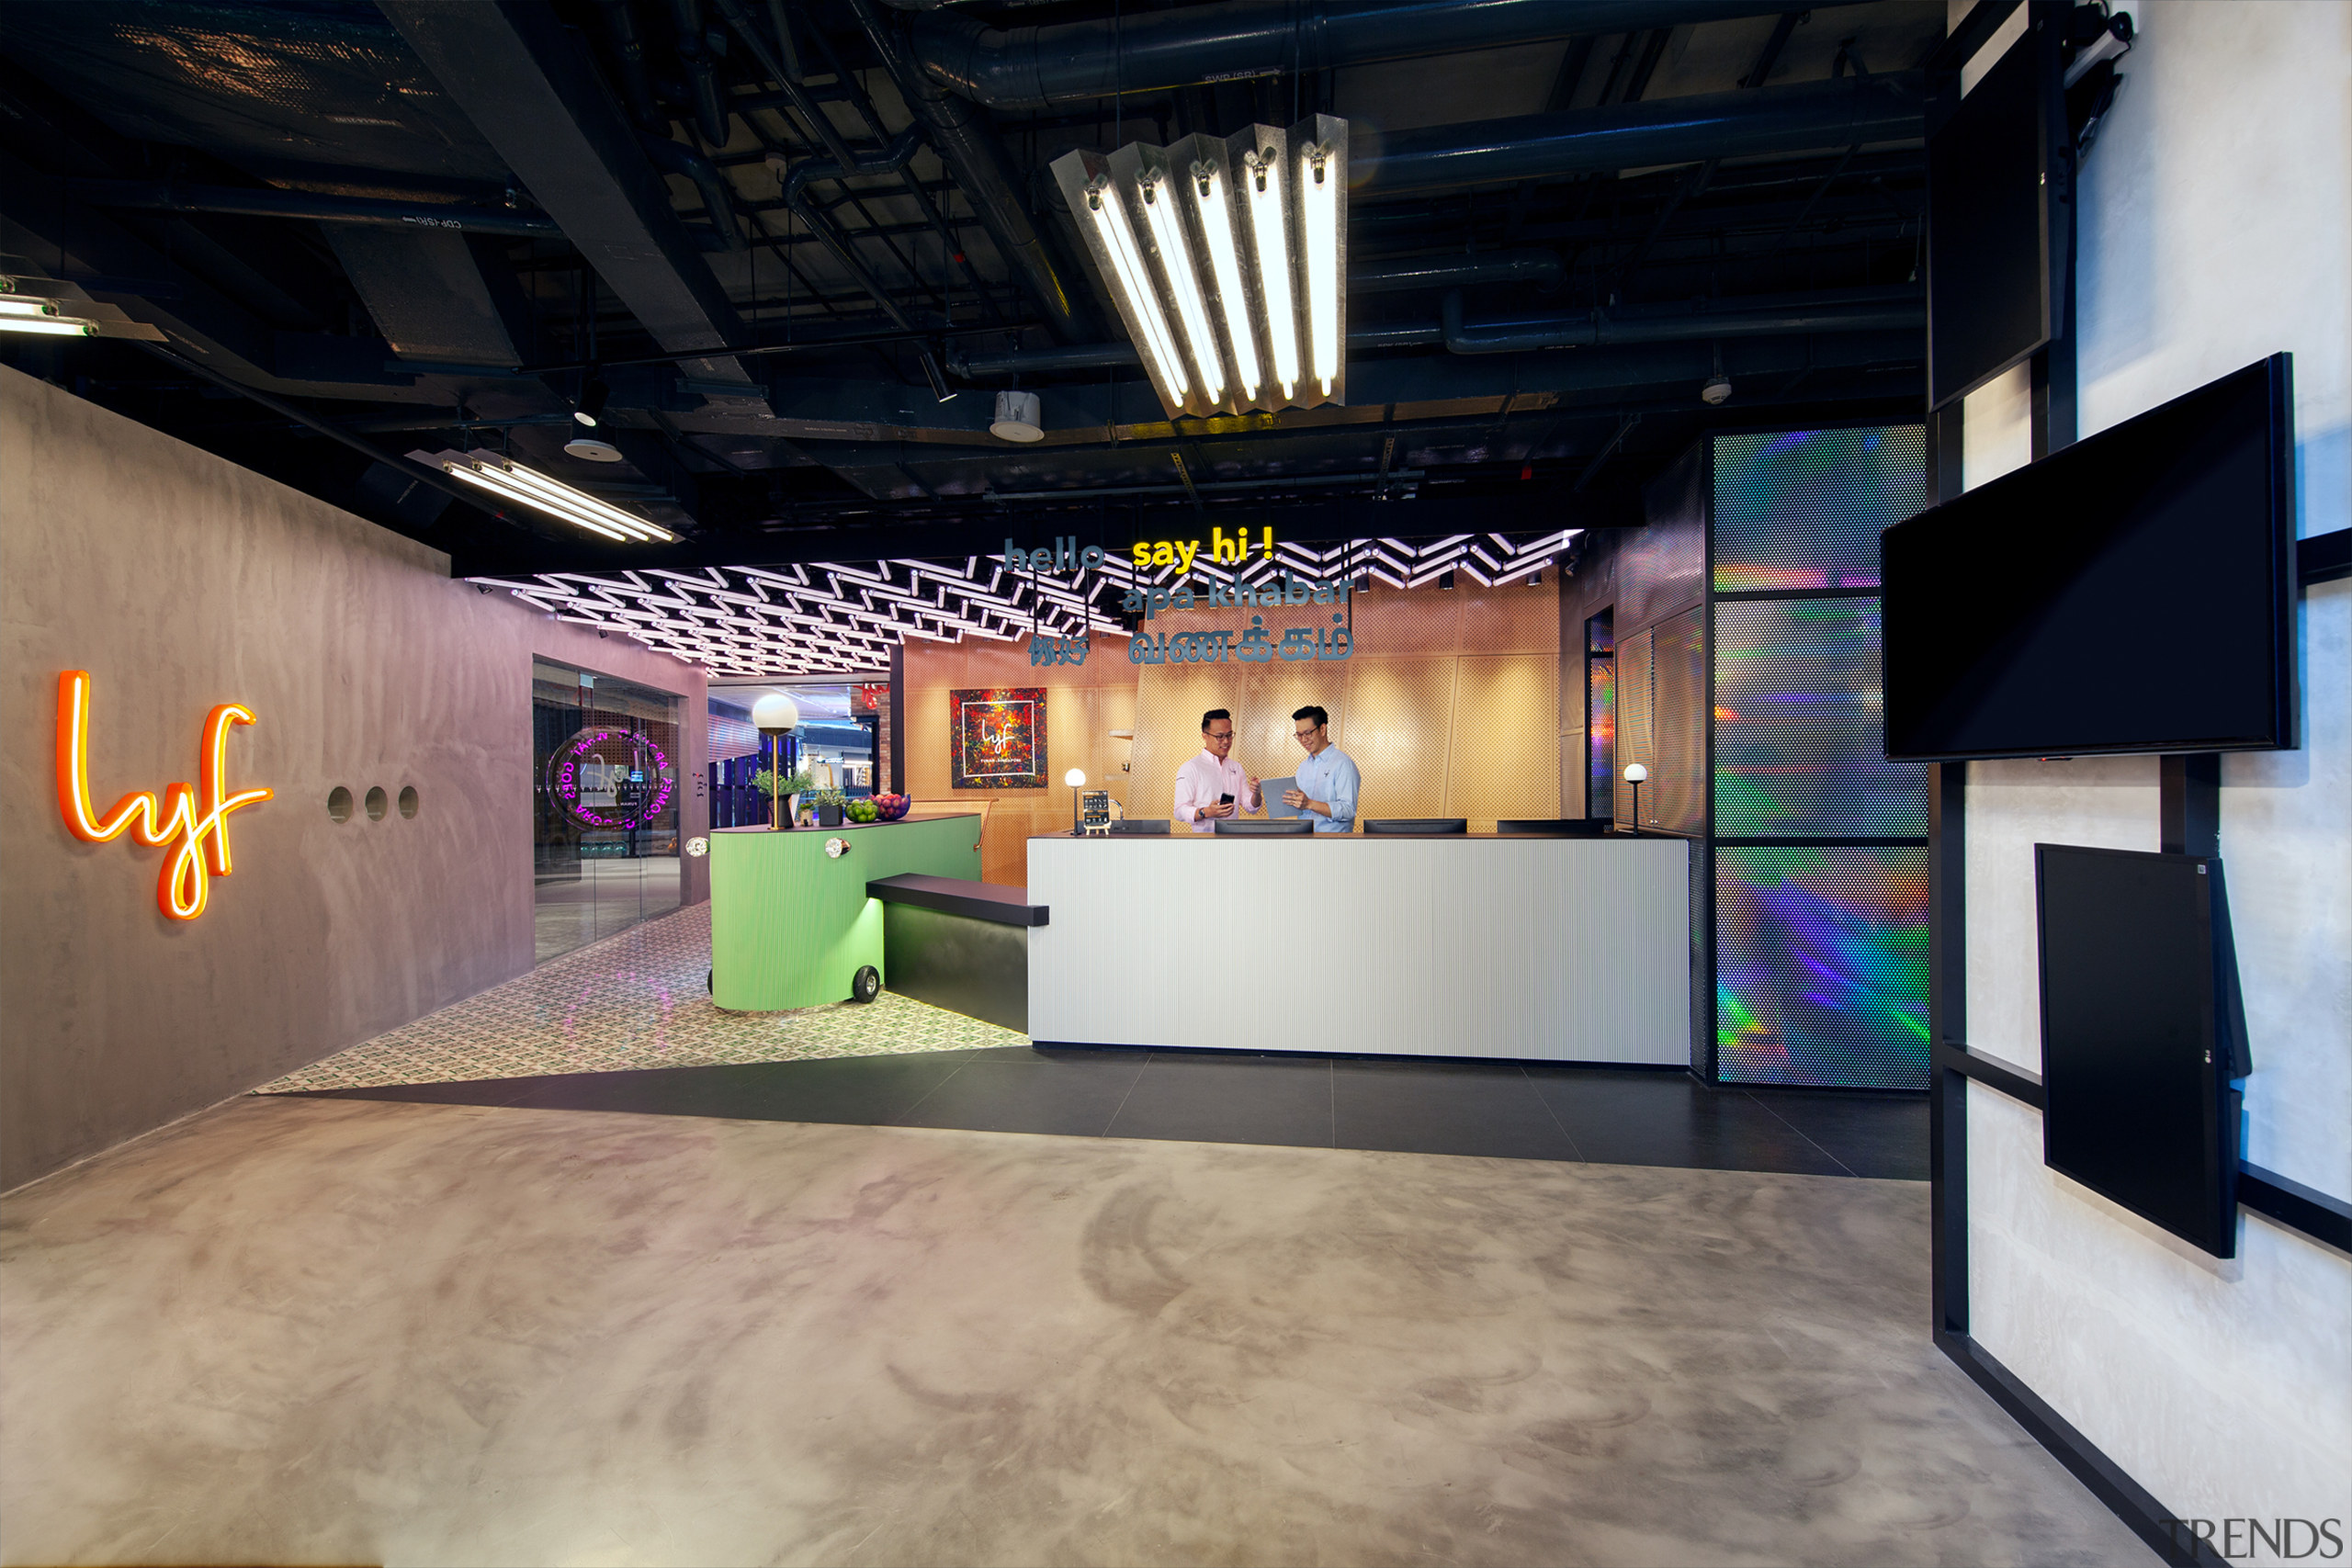 Reception at lyf Funan Singapore is open and architecture, art, art gallery, building, ceiling, design, interior design, lobby, loft, room, tourist attraction, visual arts, black, gray